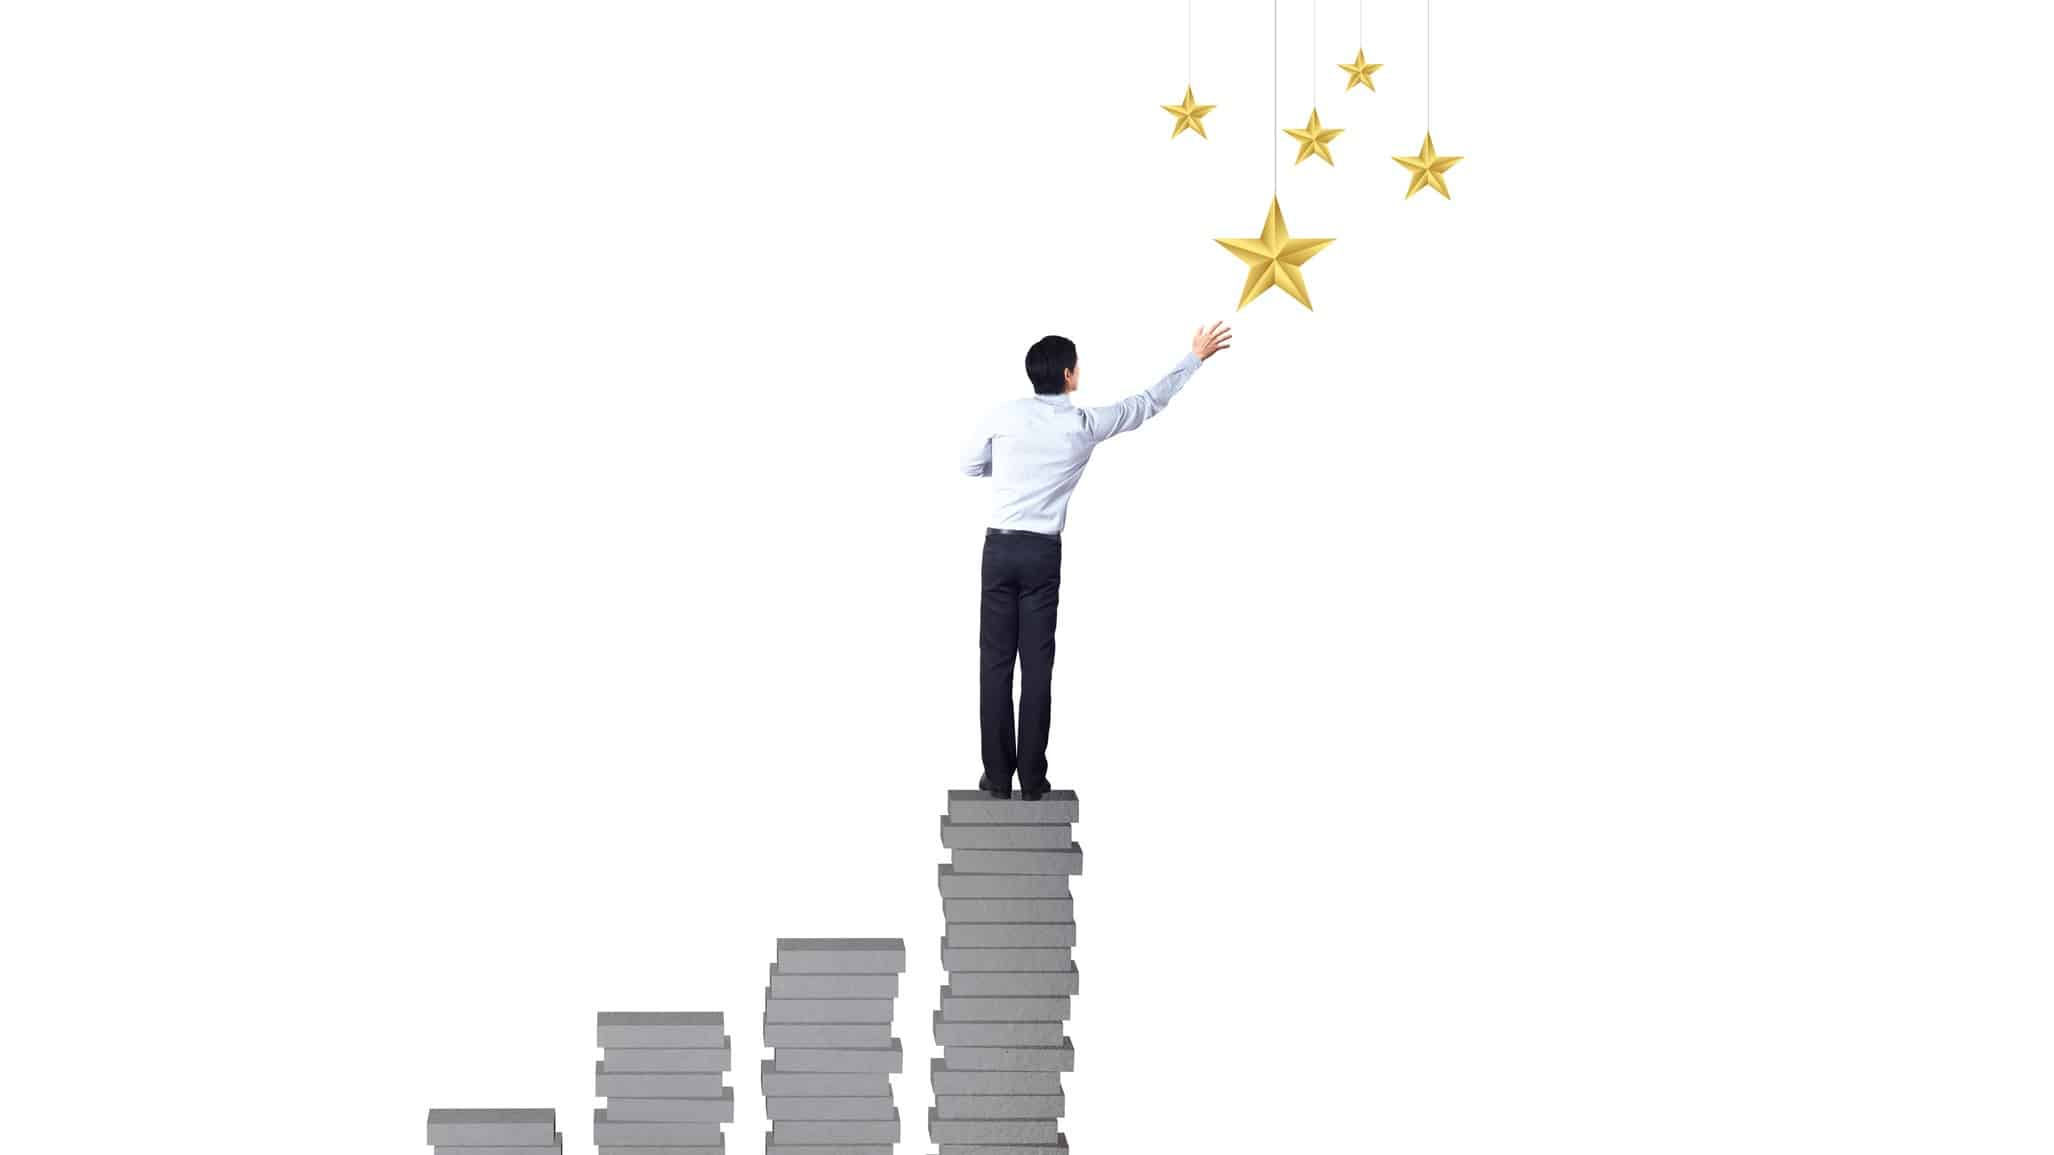 fund manager standing on increasing tiles of bricks reaching for the stars